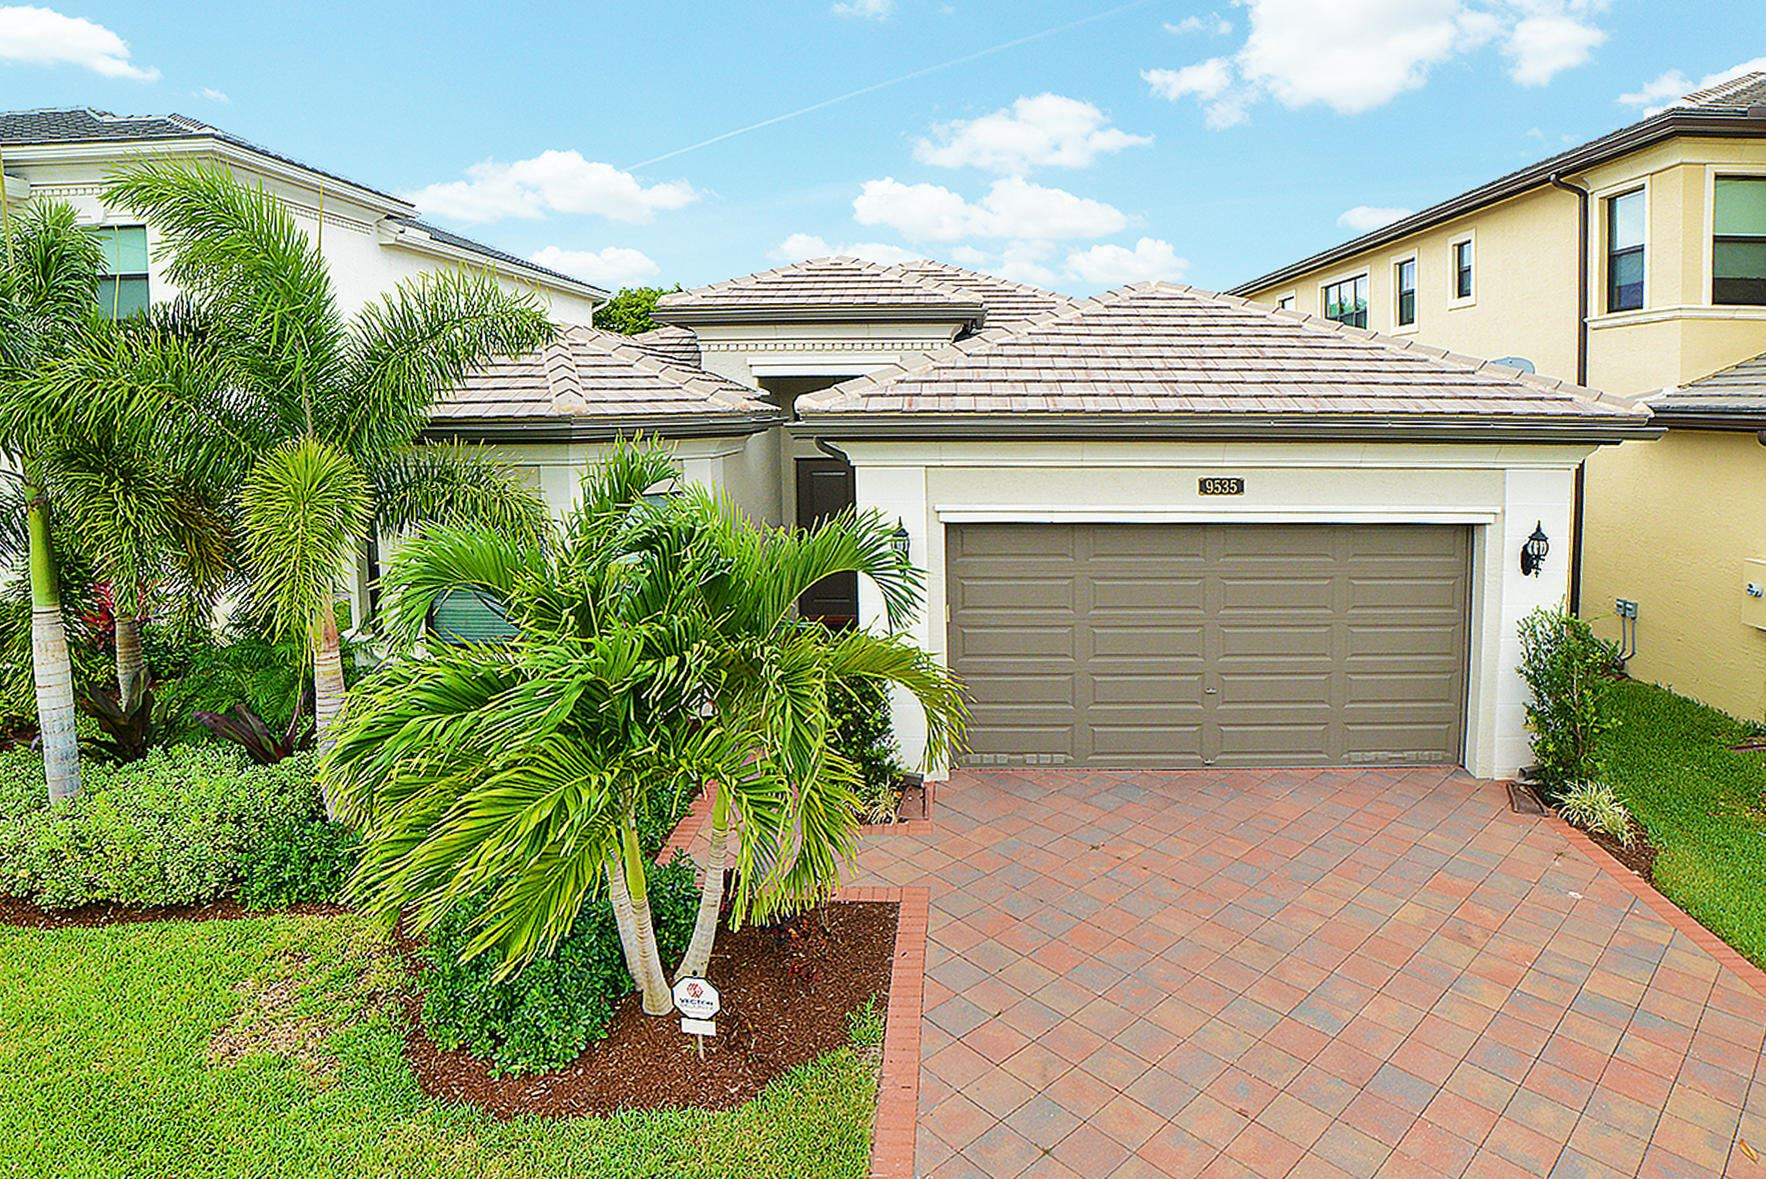 9535 Eden Roc Court, Delray Beach, FL 33446 - #: RX-10625329